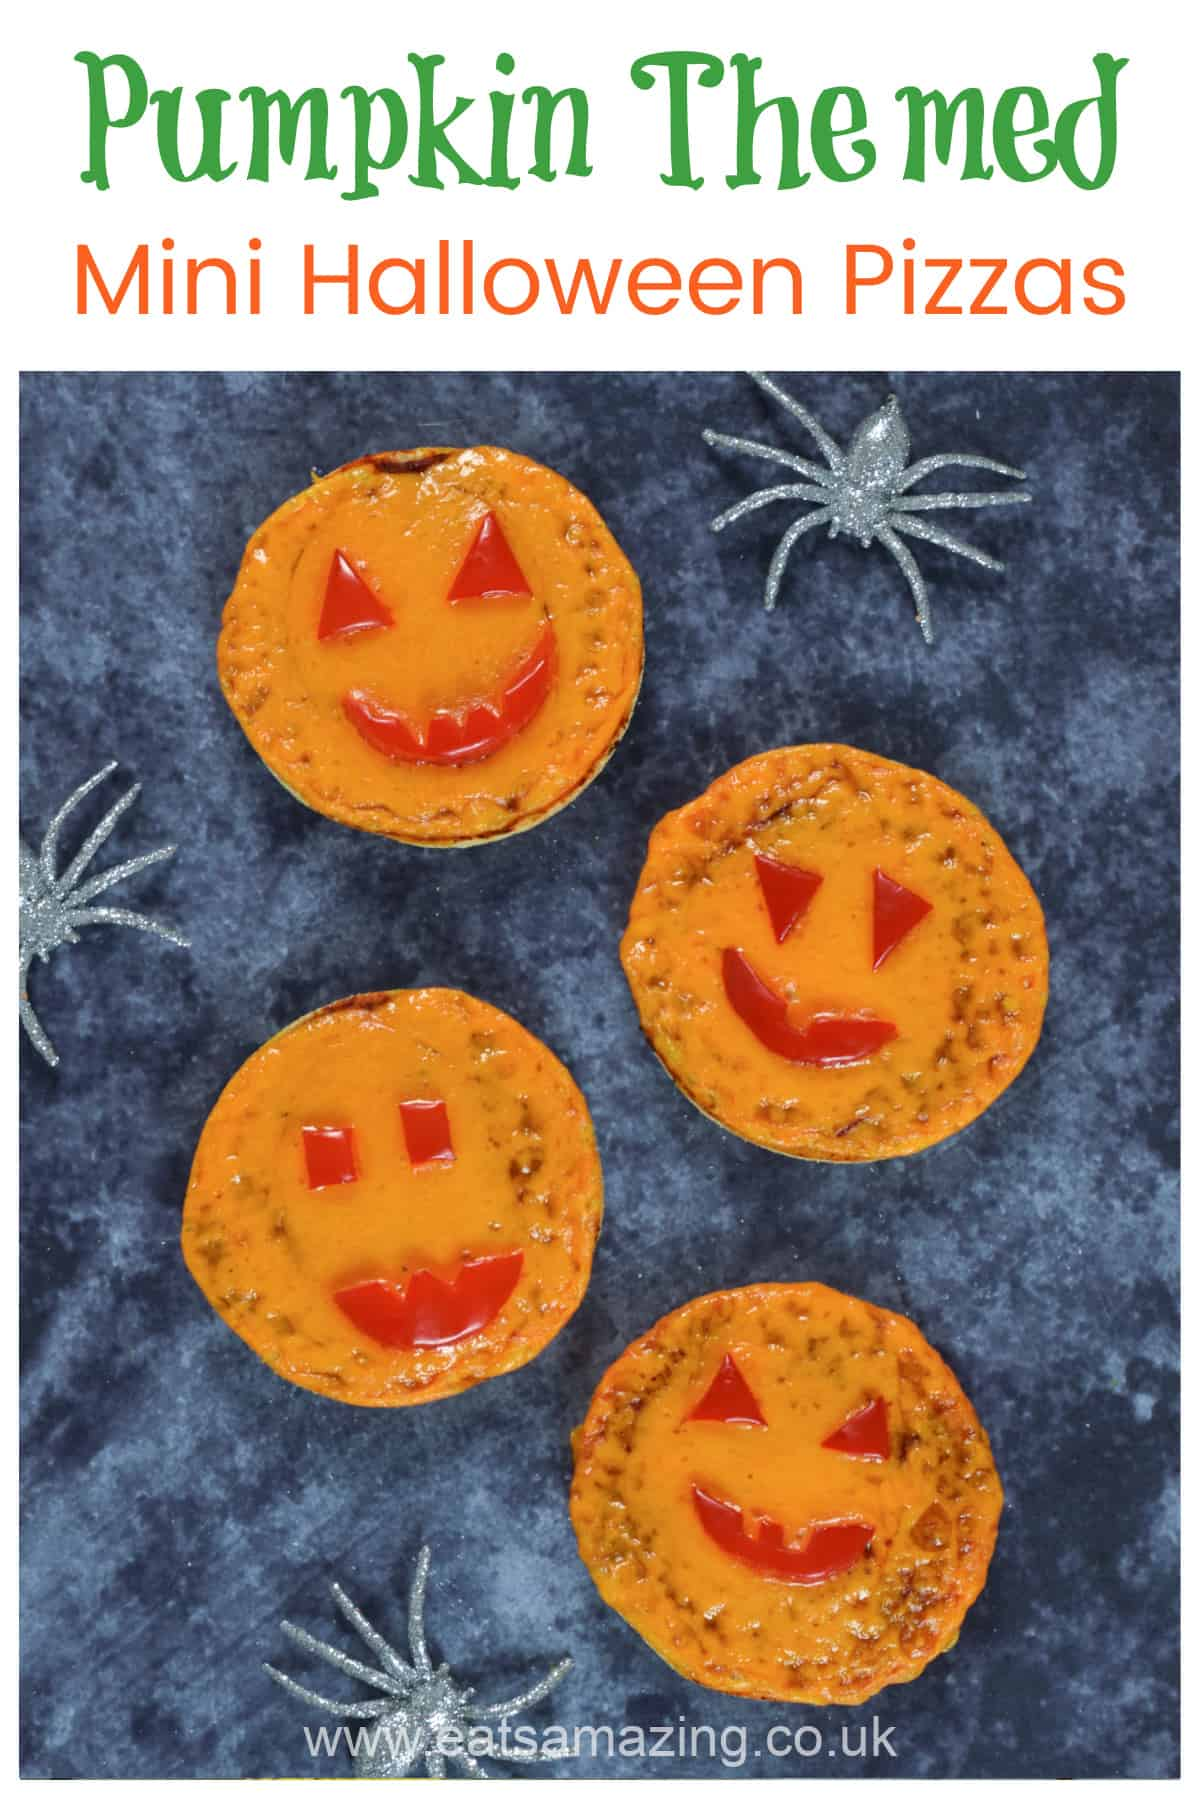 Cute easy pumpkin themed mini halloween pizzas recipe - fun Halloween party food for kids